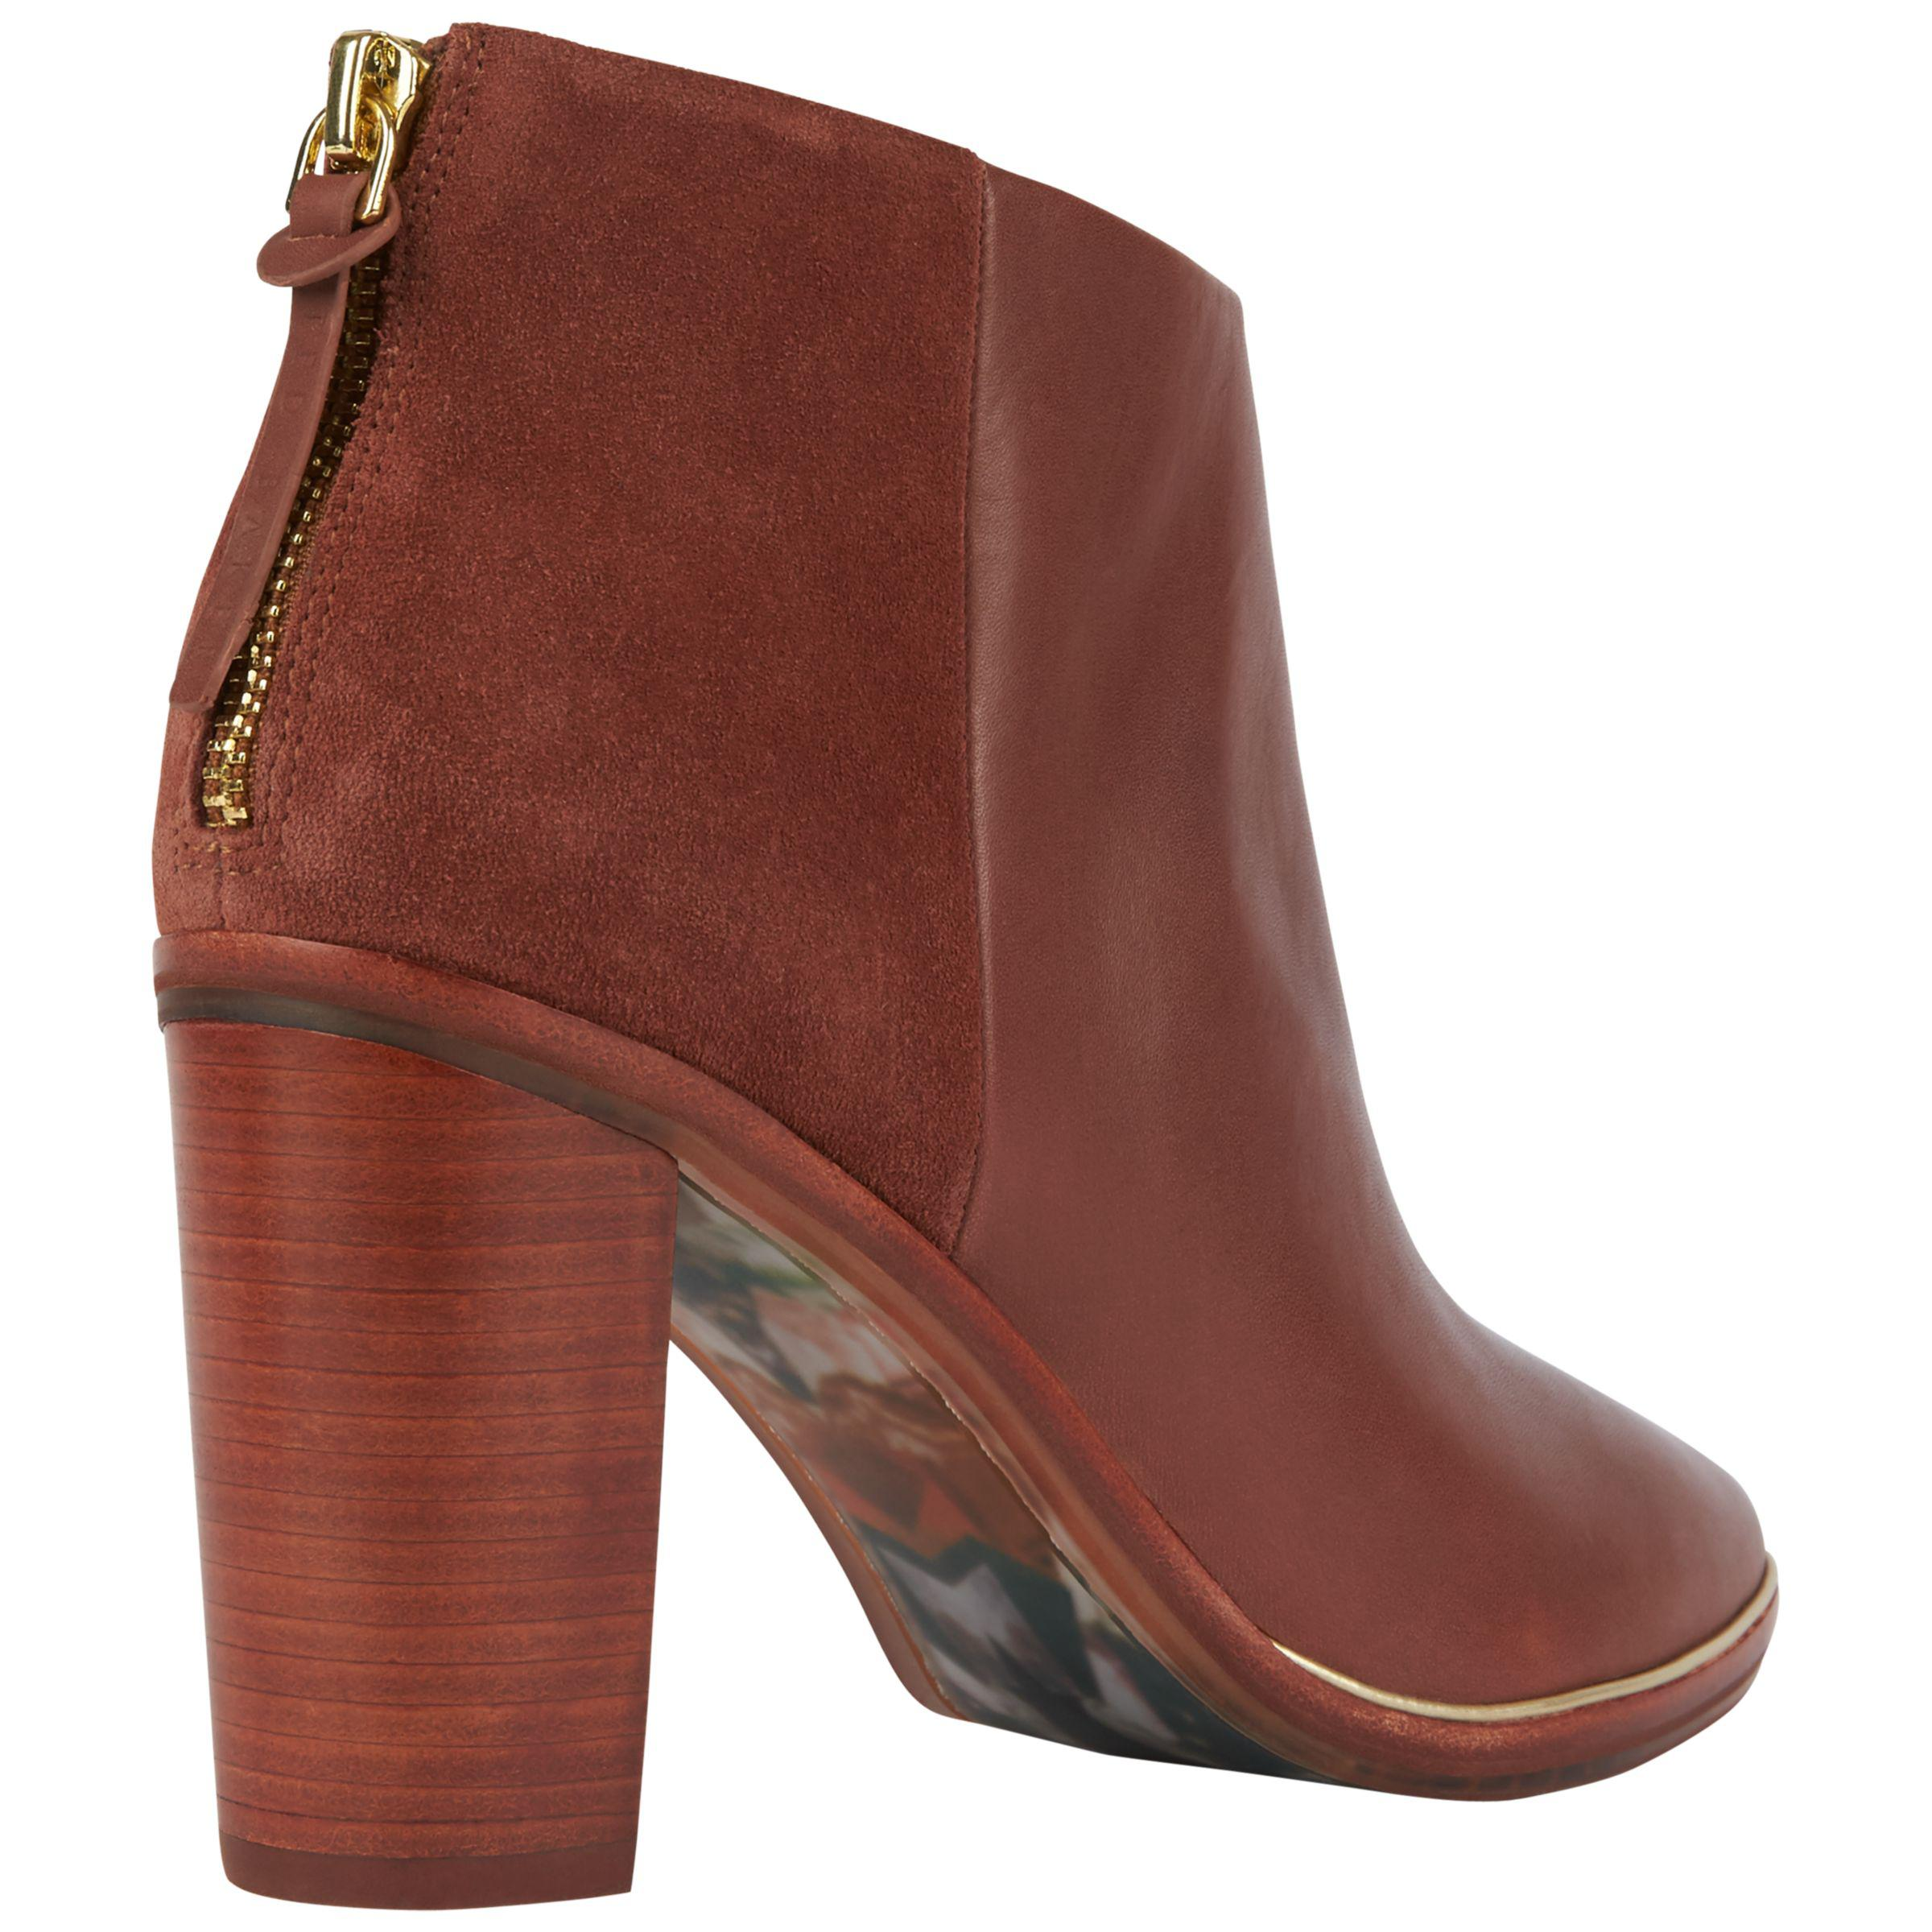 Ted Baker Leather Azaila Block Heeled Ankle Boots in Tan (Brown)